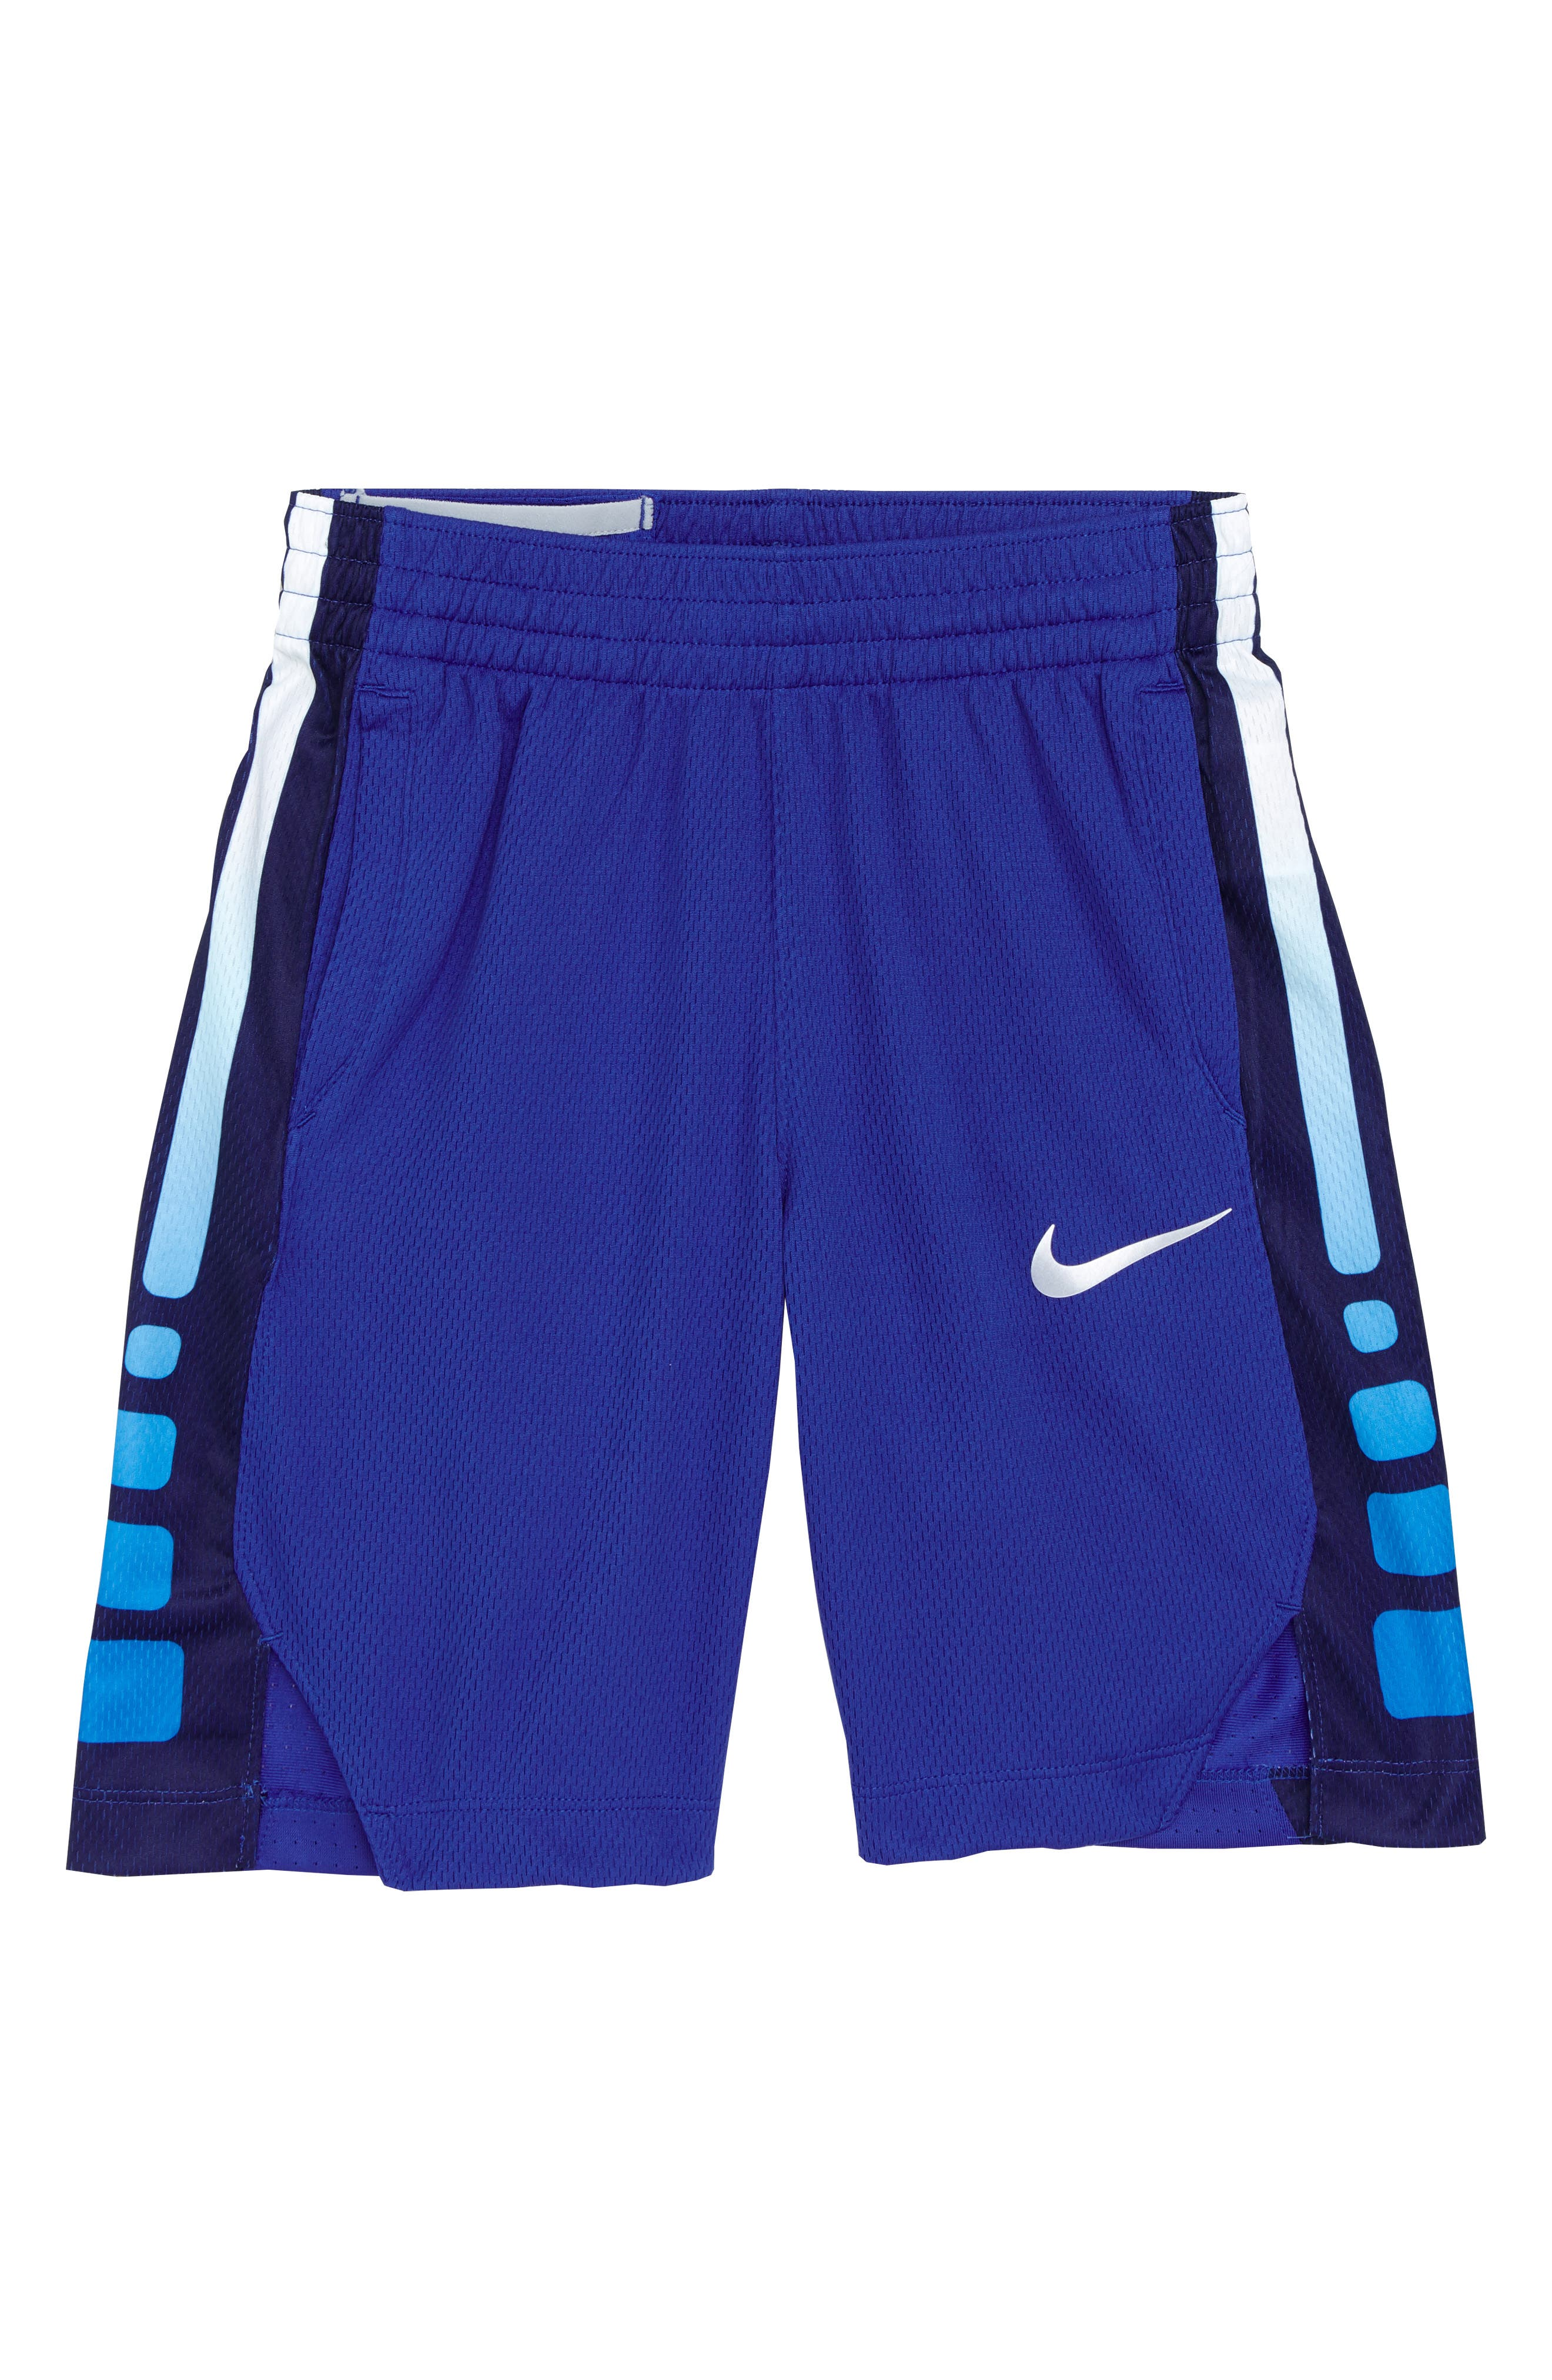 Dry Elite Basketball Shorts,                             Main thumbnail 15, color,